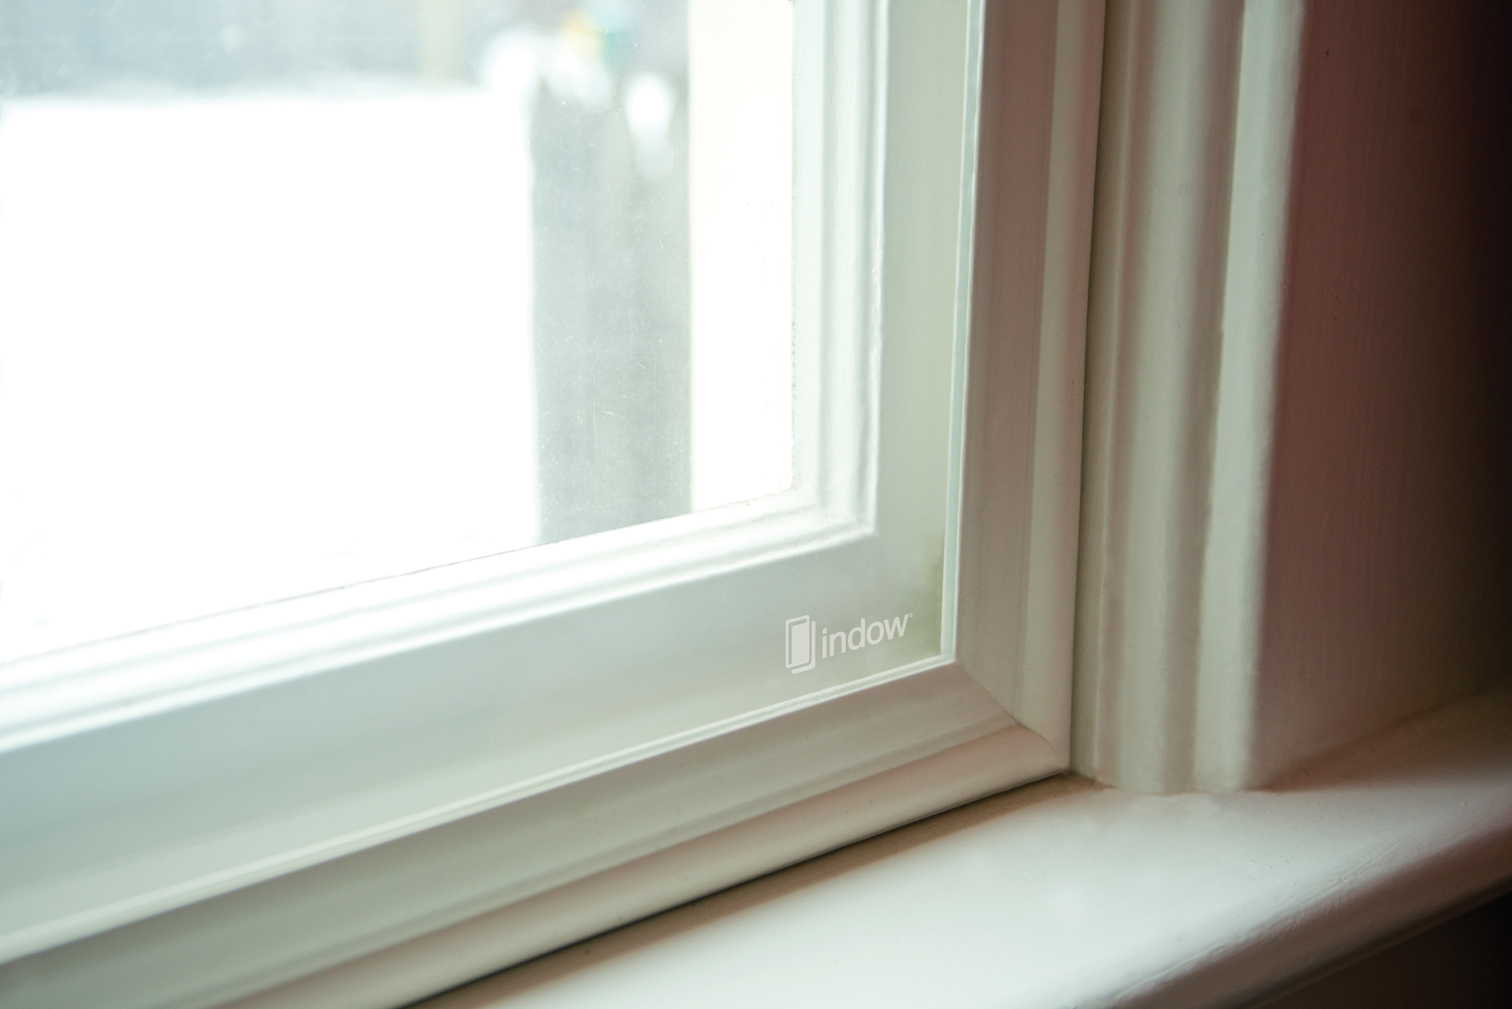 Frost-covered window with snow outside: window repair or replacement might not actually be necessary